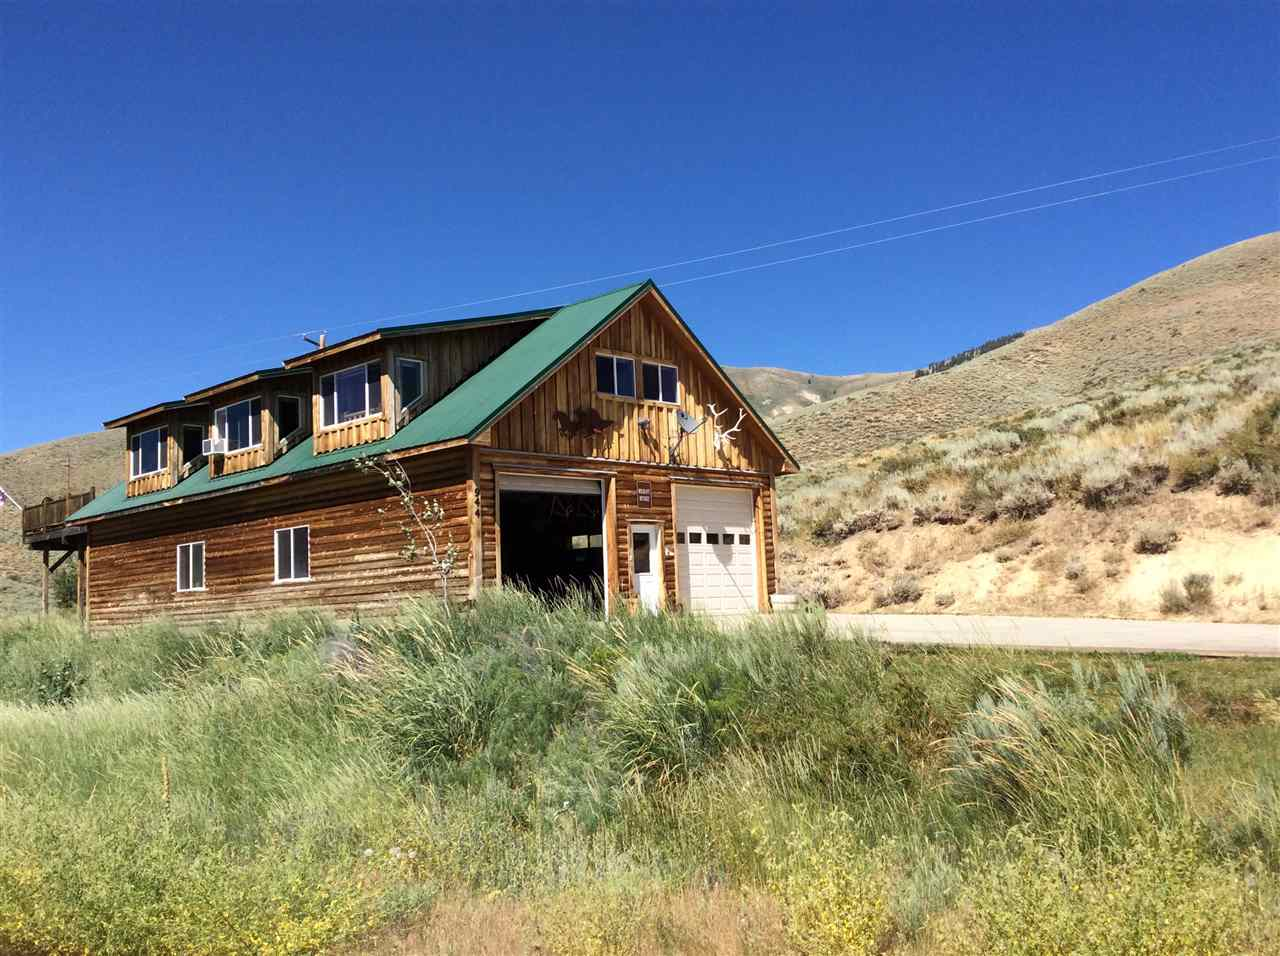 Single Family Home for Sale at 944 N Soldier Creek Road 944 N Soldier Creek Road Fairfield, Idaho 83327